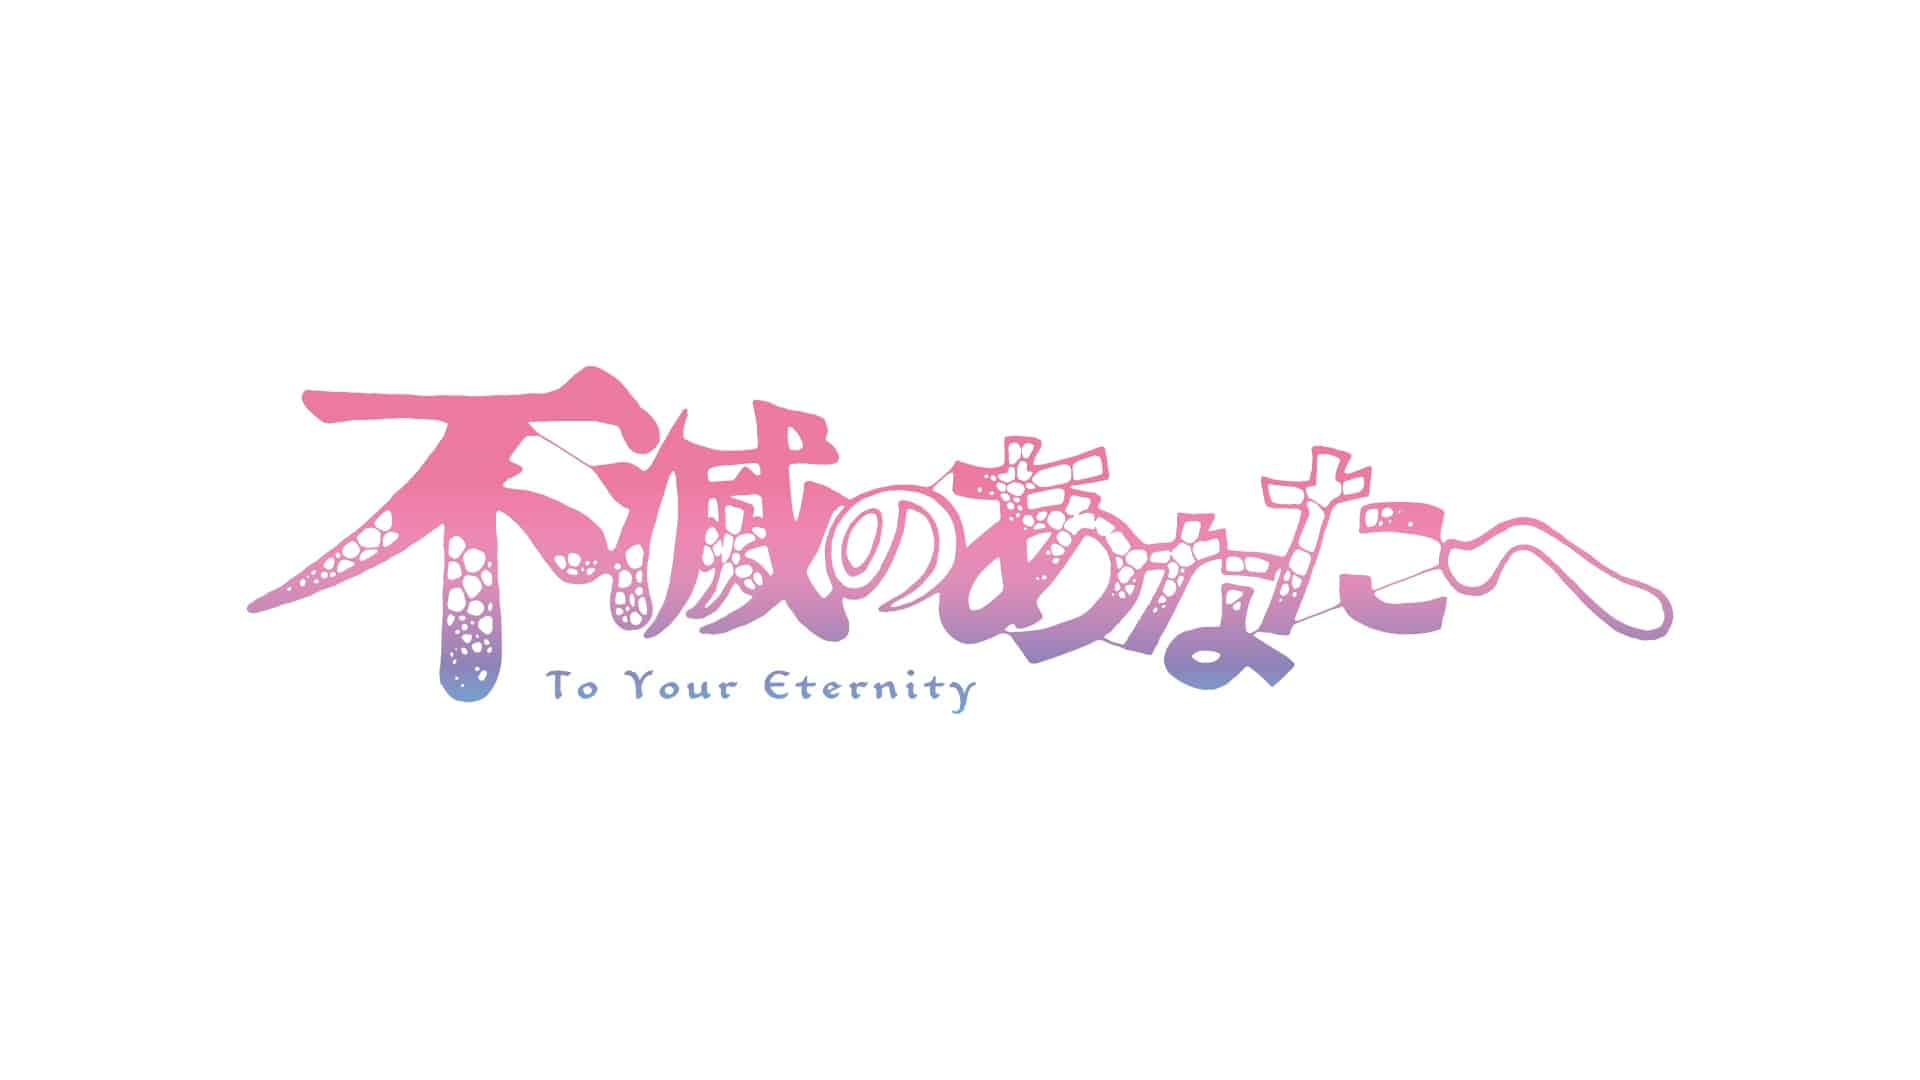 Title Card - To Your Eternity